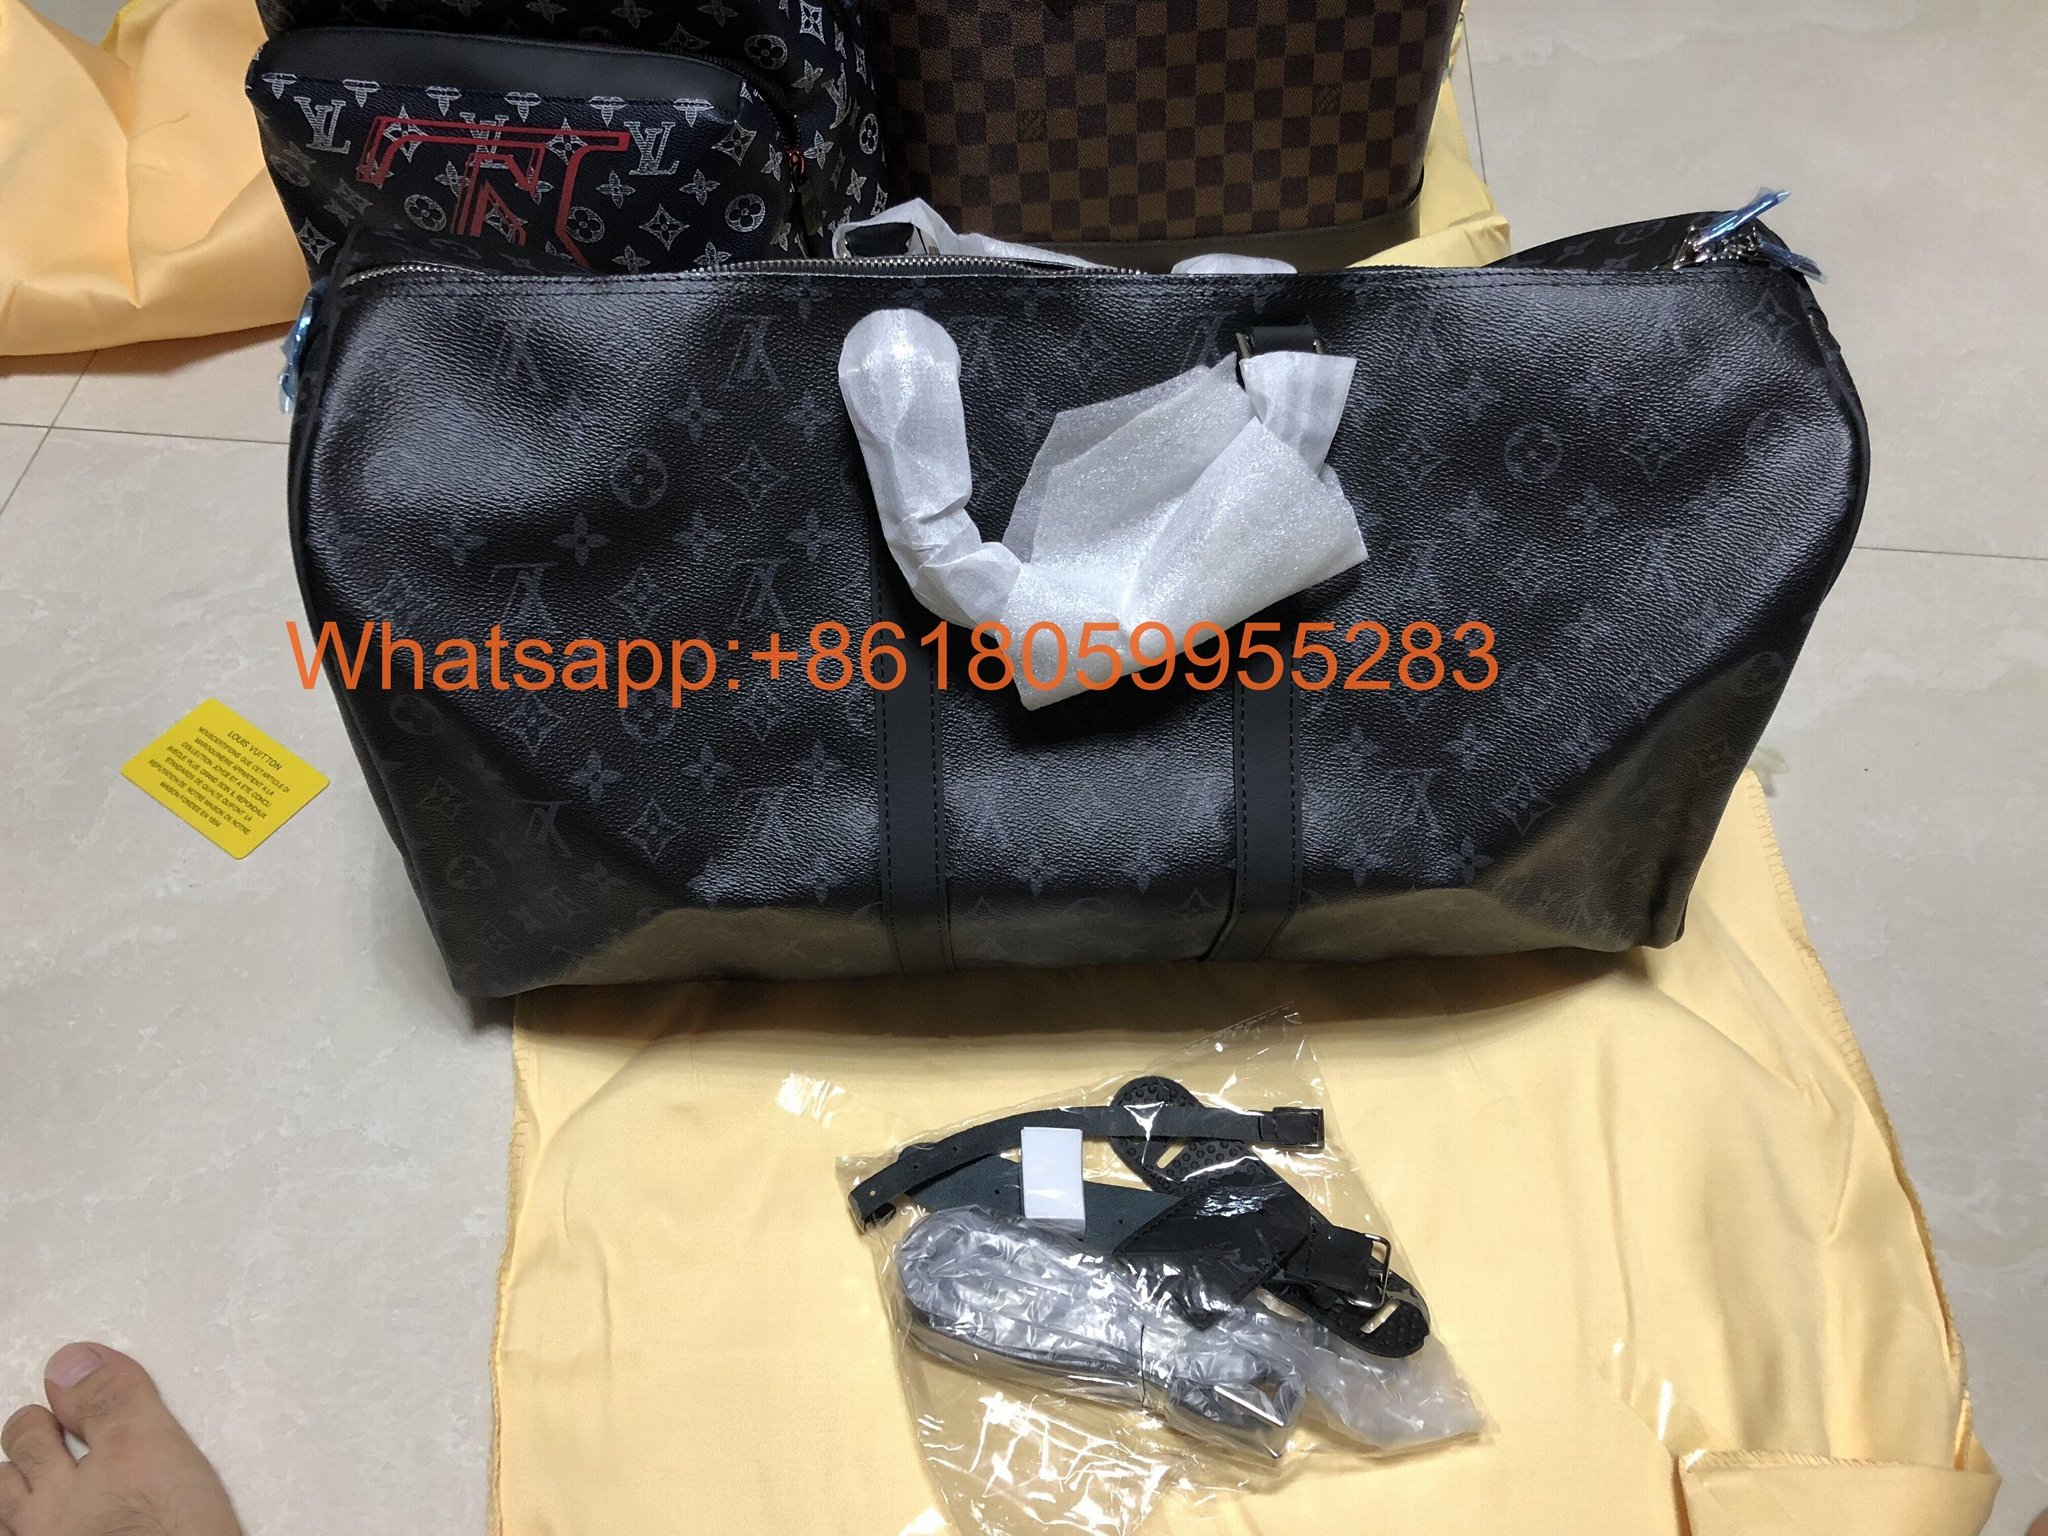 Cheap Louis Vuitton Bags Women LV Handbags Replica Louis Vuitton Handbags  LV Bag ... 60af315b322d4